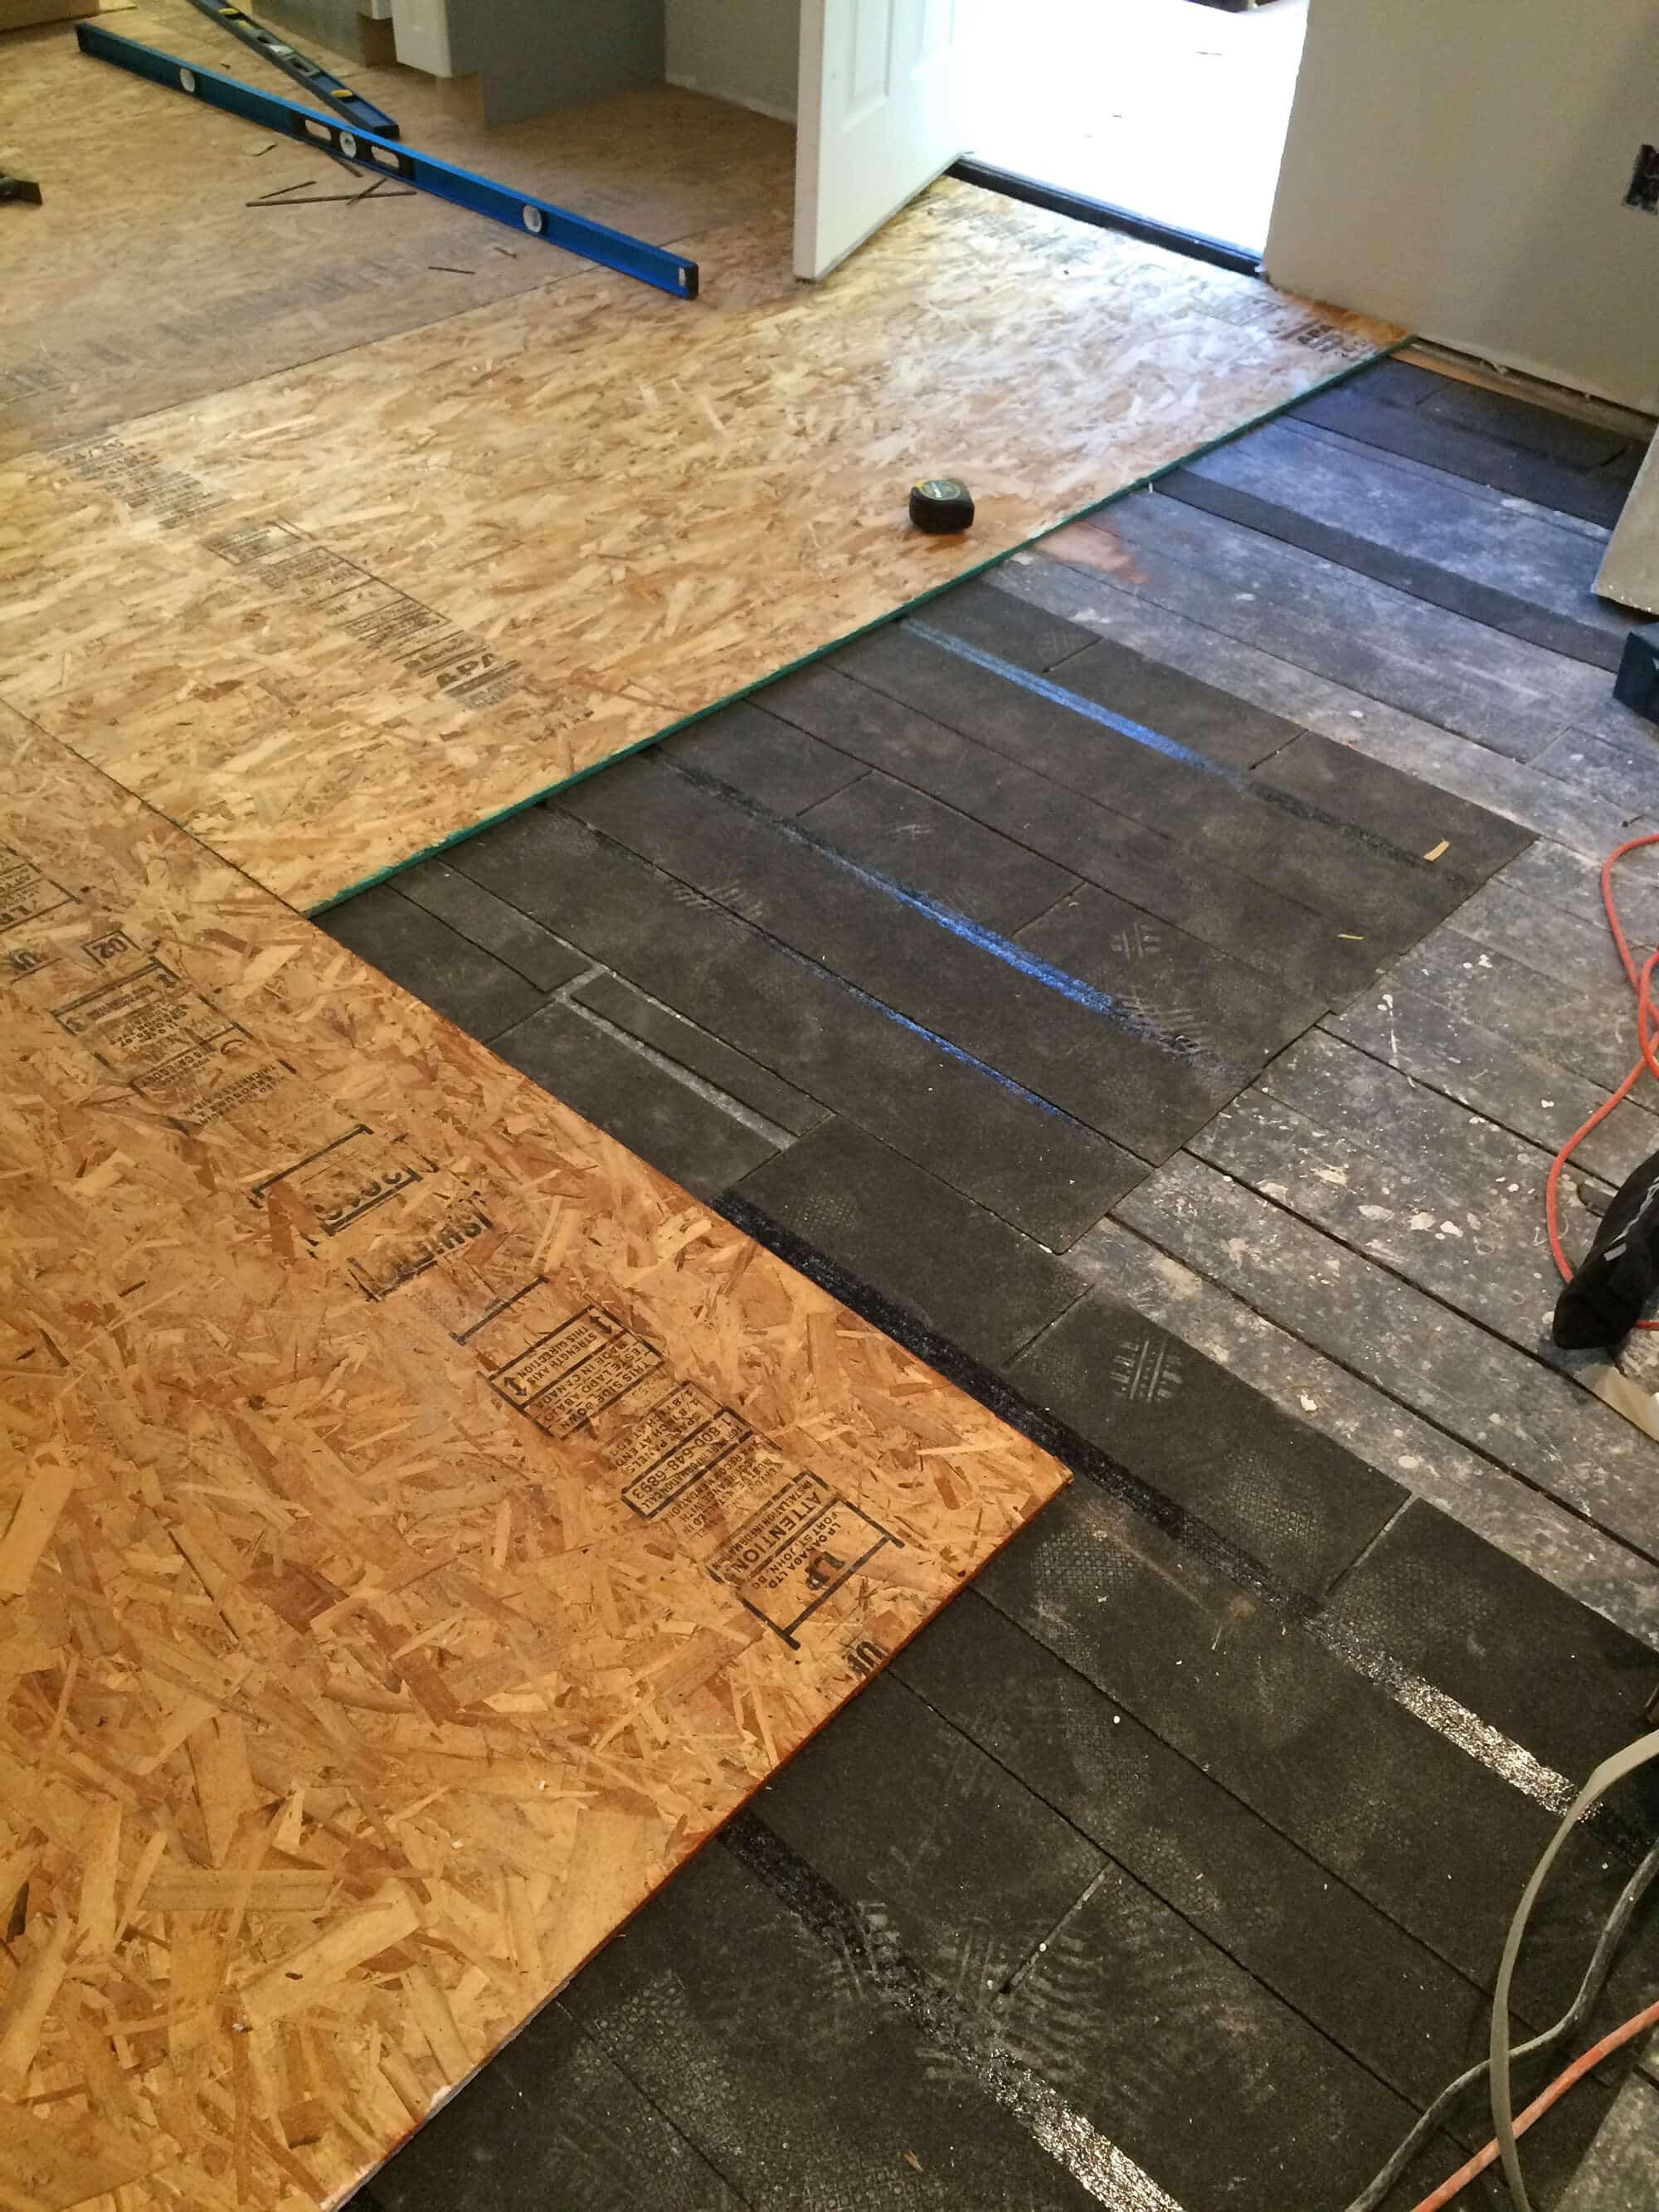 Total Hardwood Flooring Reviews Of the Micro Dwelling Project Part 5 Flooring the Daring Gourmet with We Secured the Sub Flooring with Construction Screws Its Generally Recommended to Space the Screws Every 8 Inches In A Grid Pattern